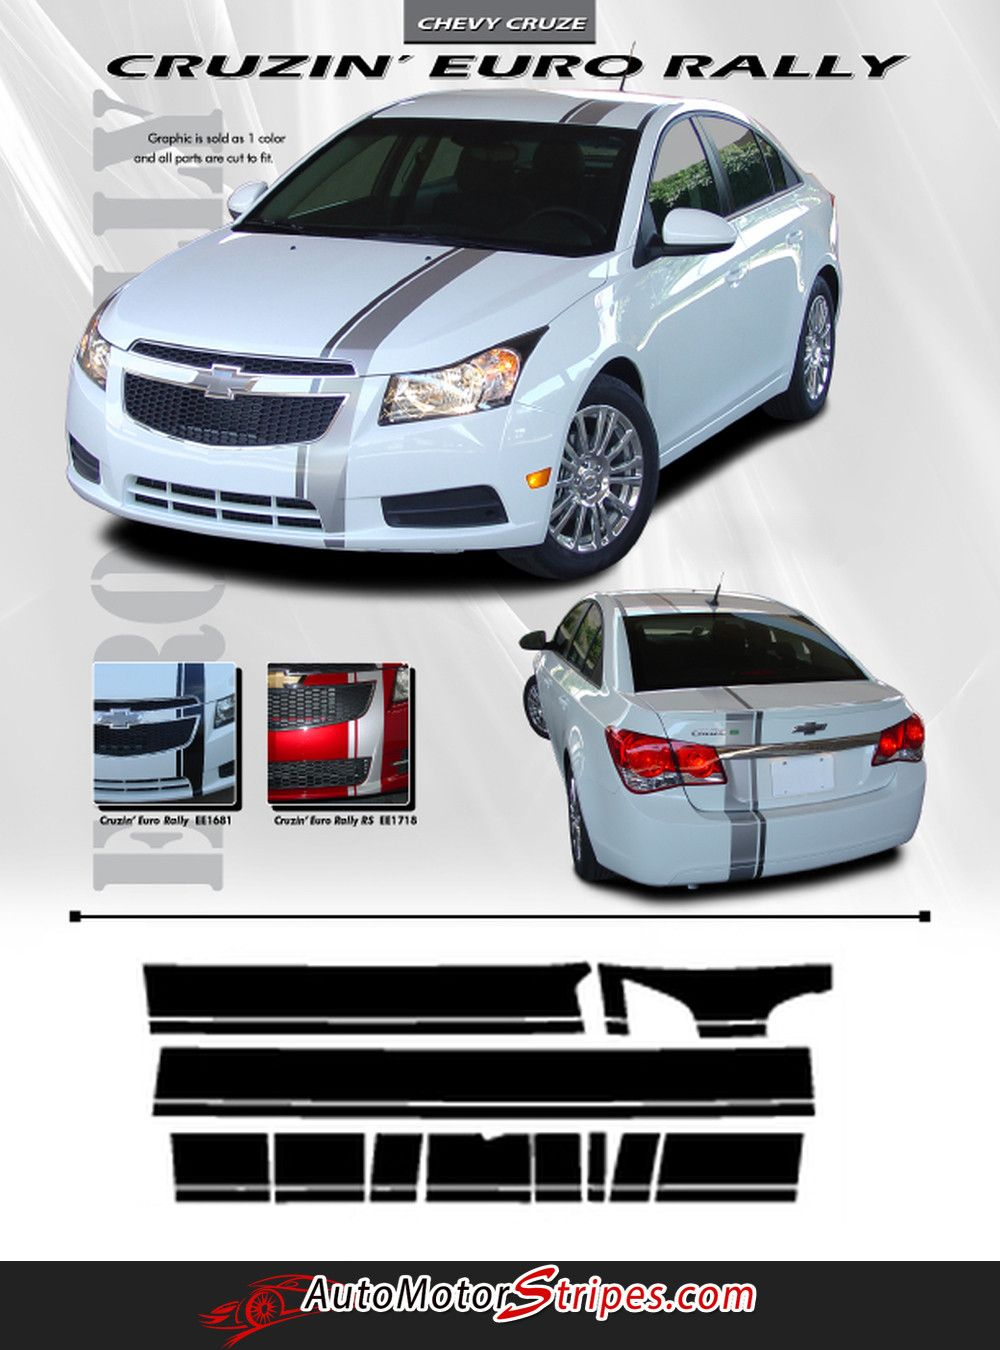 Chevy cruze e rally euro style racing stripes hood roof trunk bumpers vinyl graphics kit